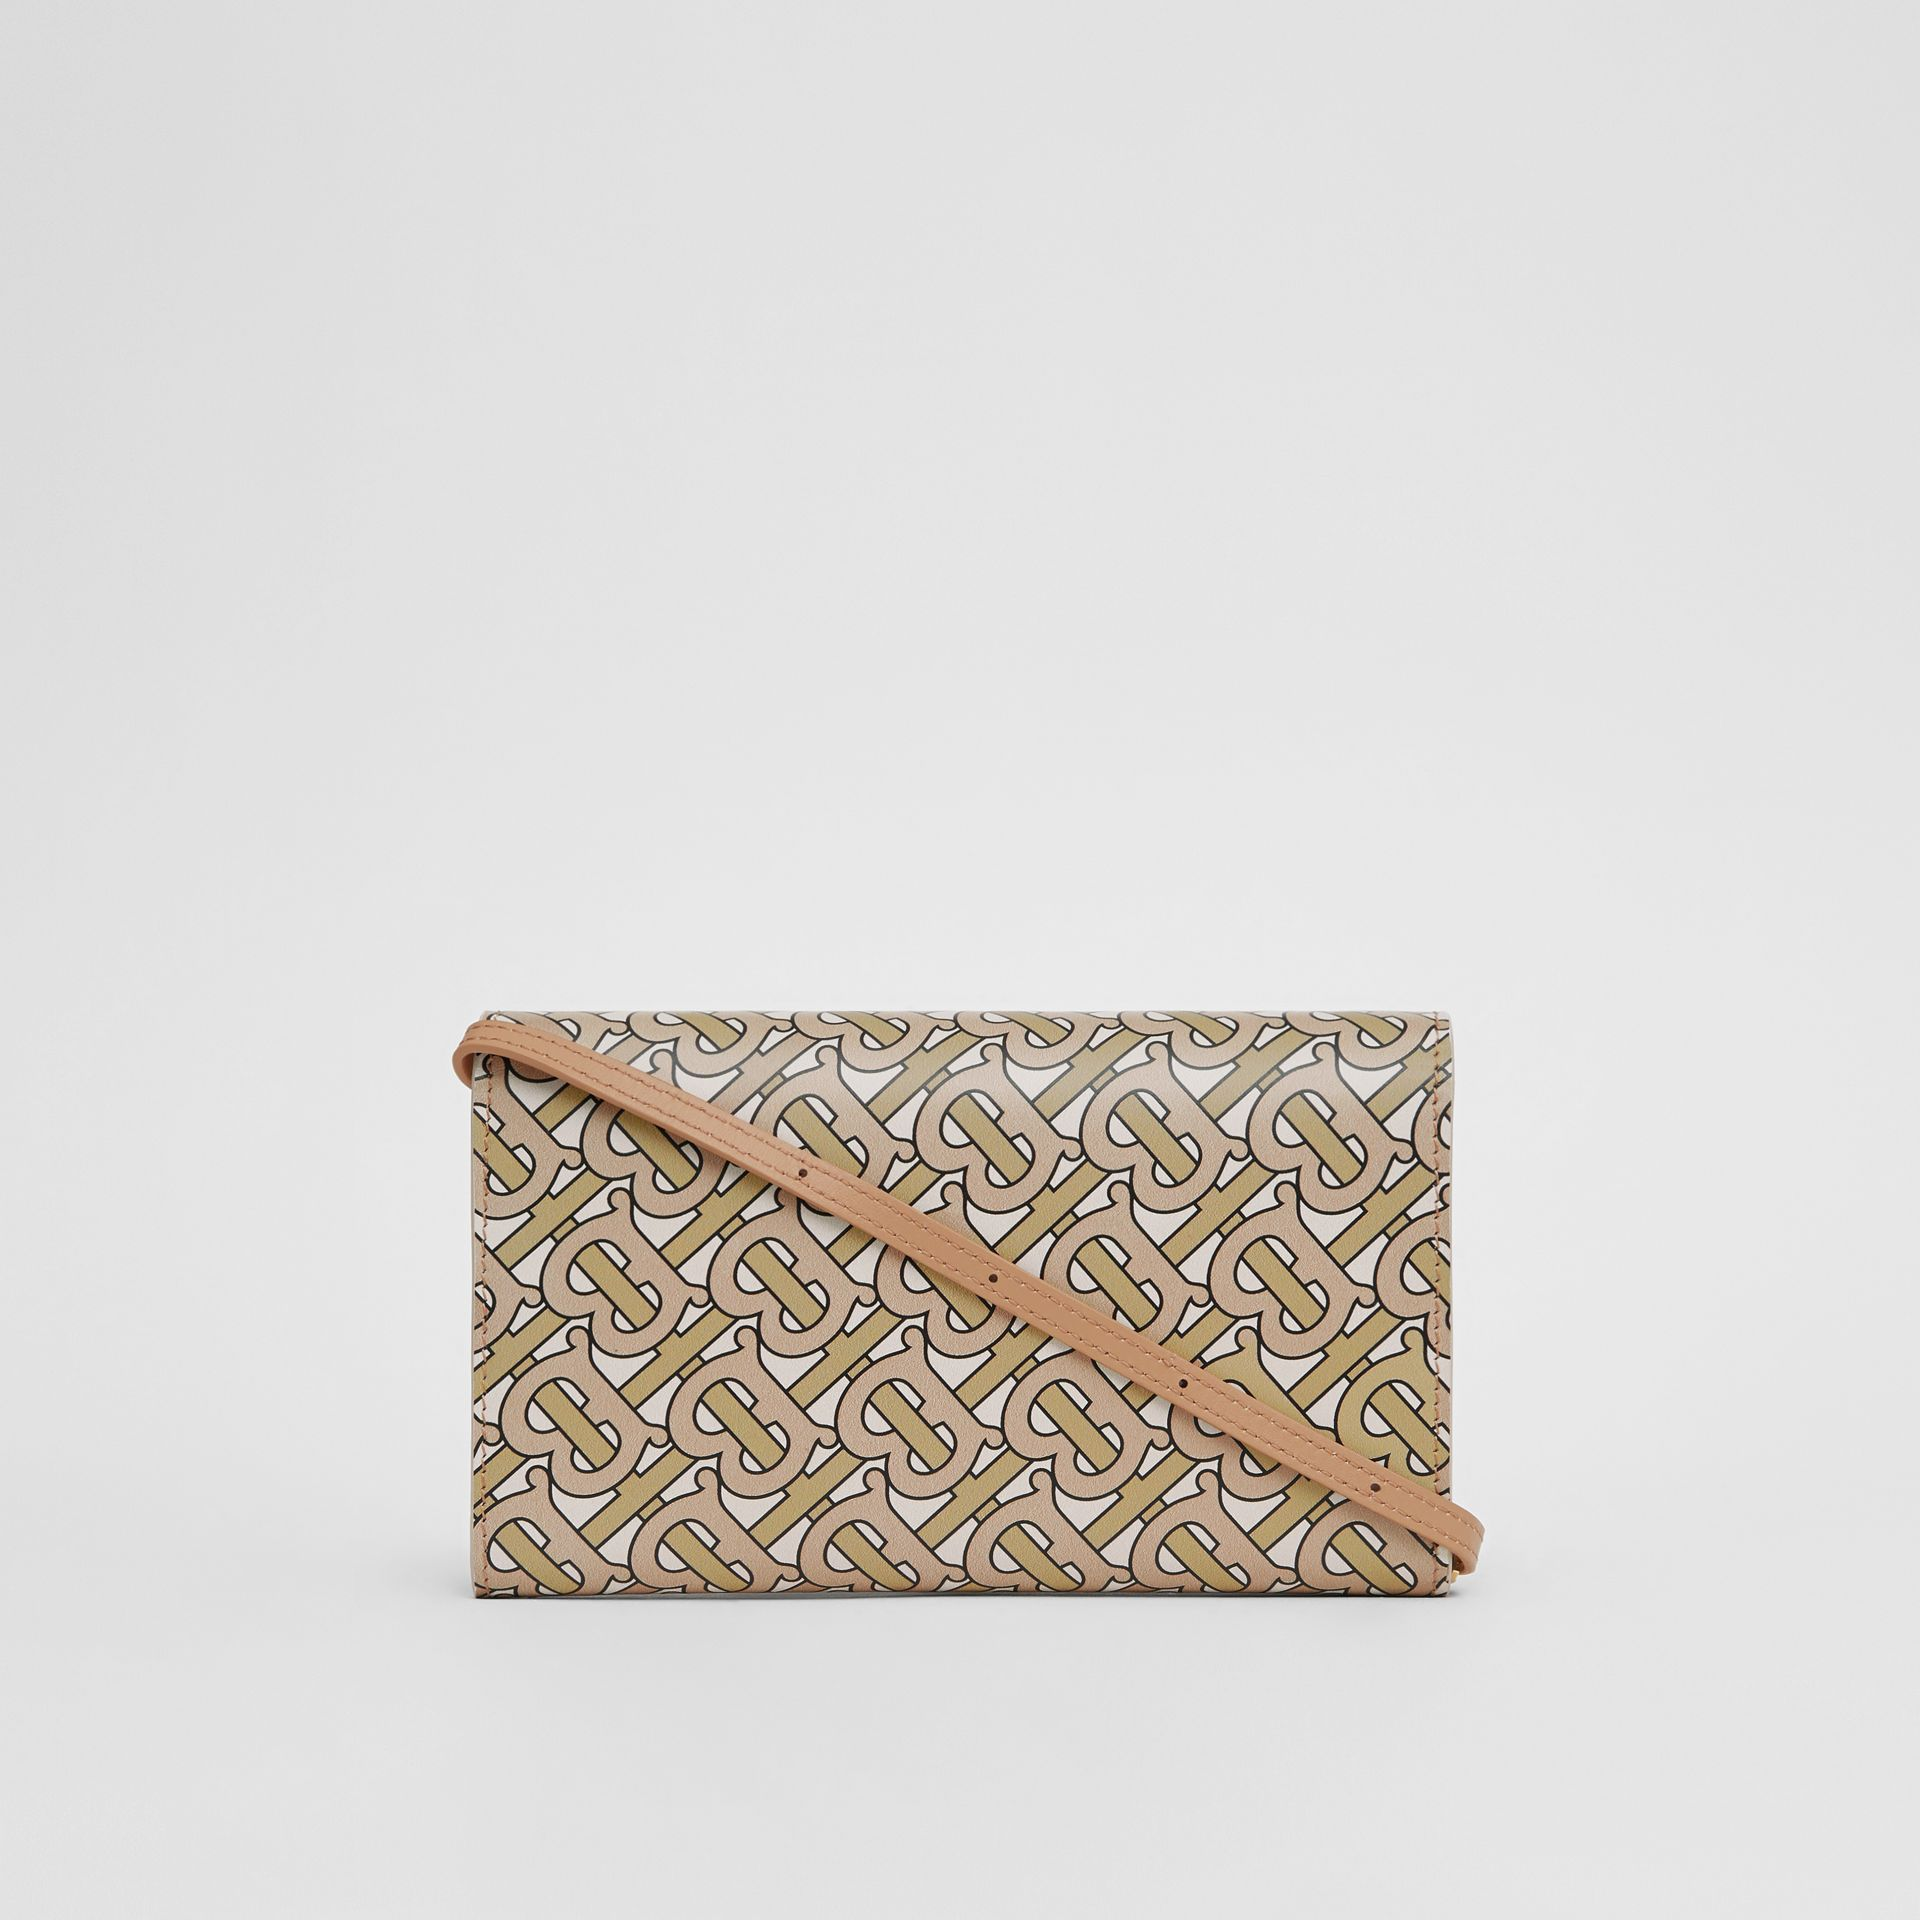 Monogram Print Leather Wallet with Detachable Strap in Beige - Women | Burberry United States - gallery image 7